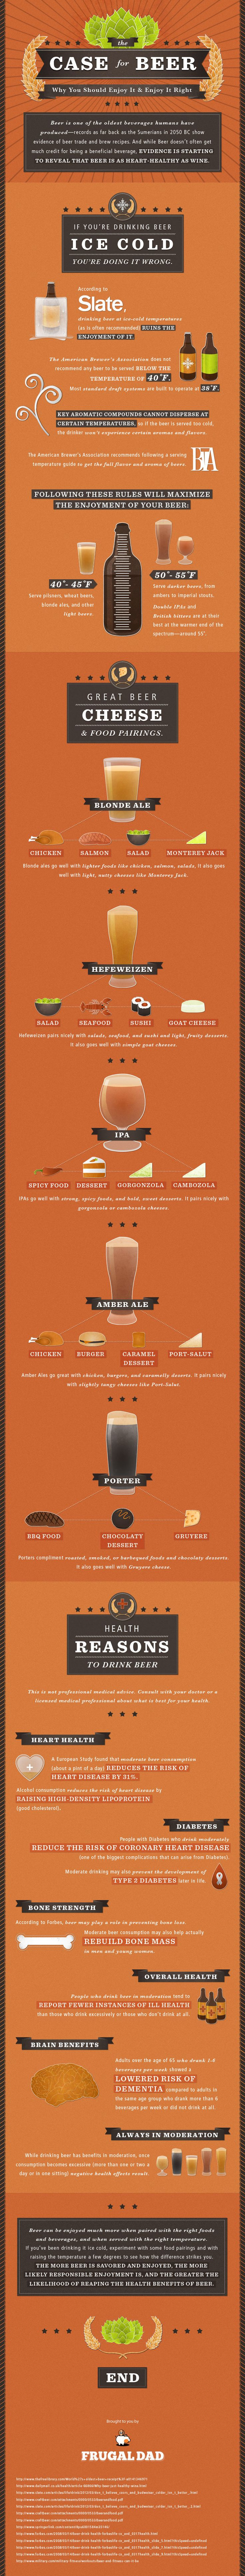 Love the beer and food pairing tips.: Smoke Jackets, Cases, Enjoying, Menu, Beer Infographic, Beer Pairing, Food Pairings, Savory Recipe, Crafts Beer